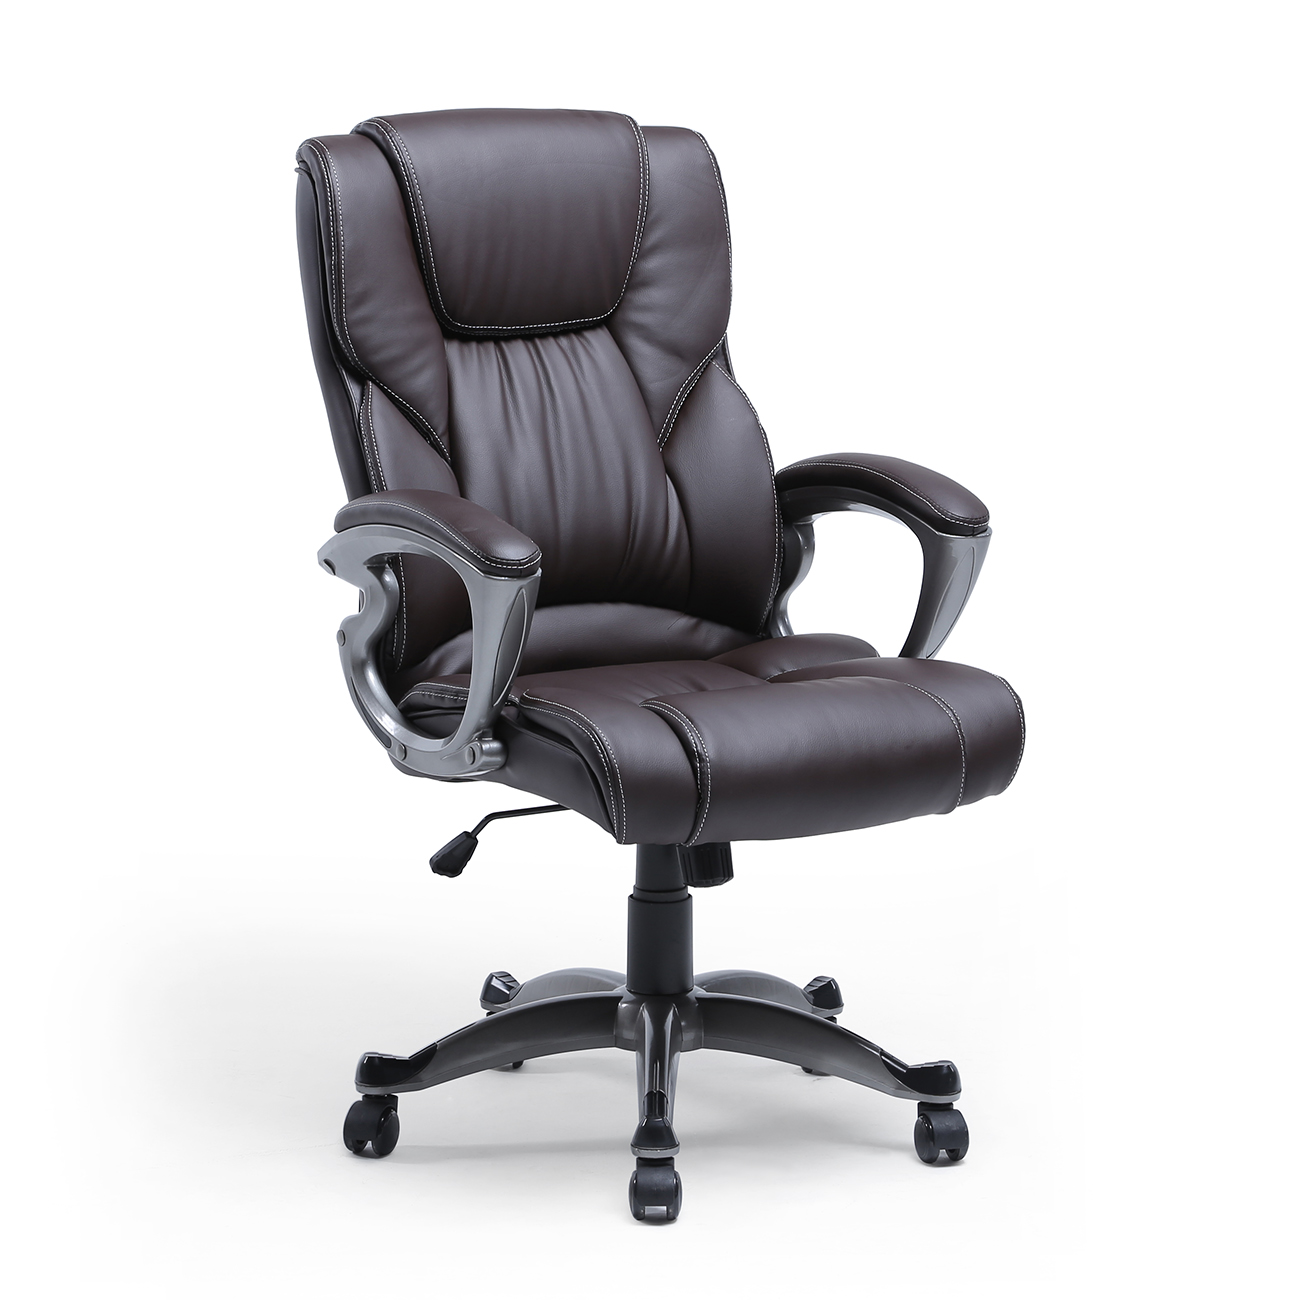 Luxury Office Chair Luxury High Brown Pu Leather Executive Office Chair Desk